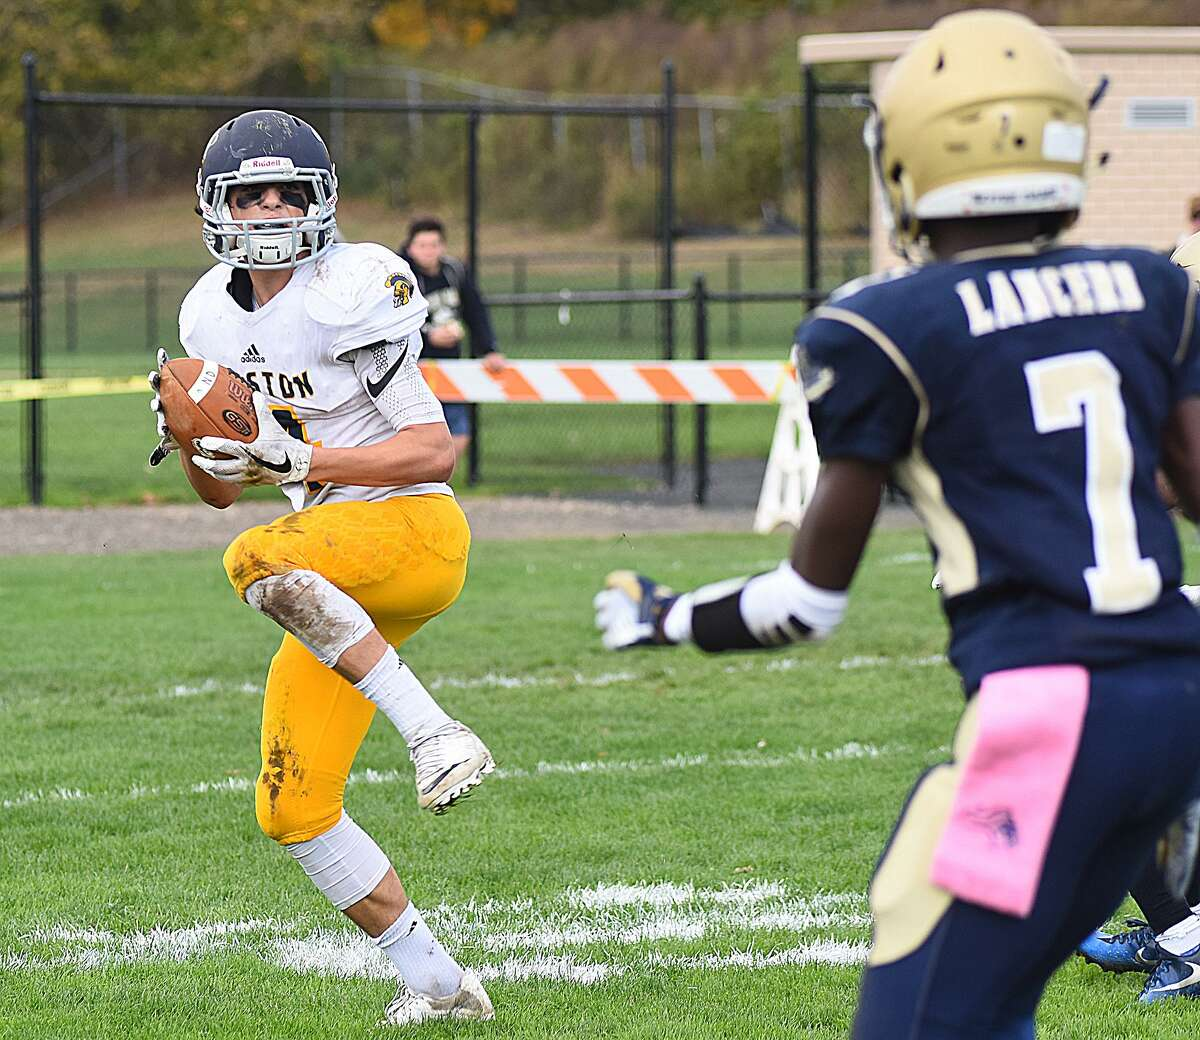 Weston's James Goetz, left, snatches the first of five Trojan interceptions during the first half of Saturday's SWC matchup against Notre Dame-Fairfield in Fairfield. Weston won the game 35-19.